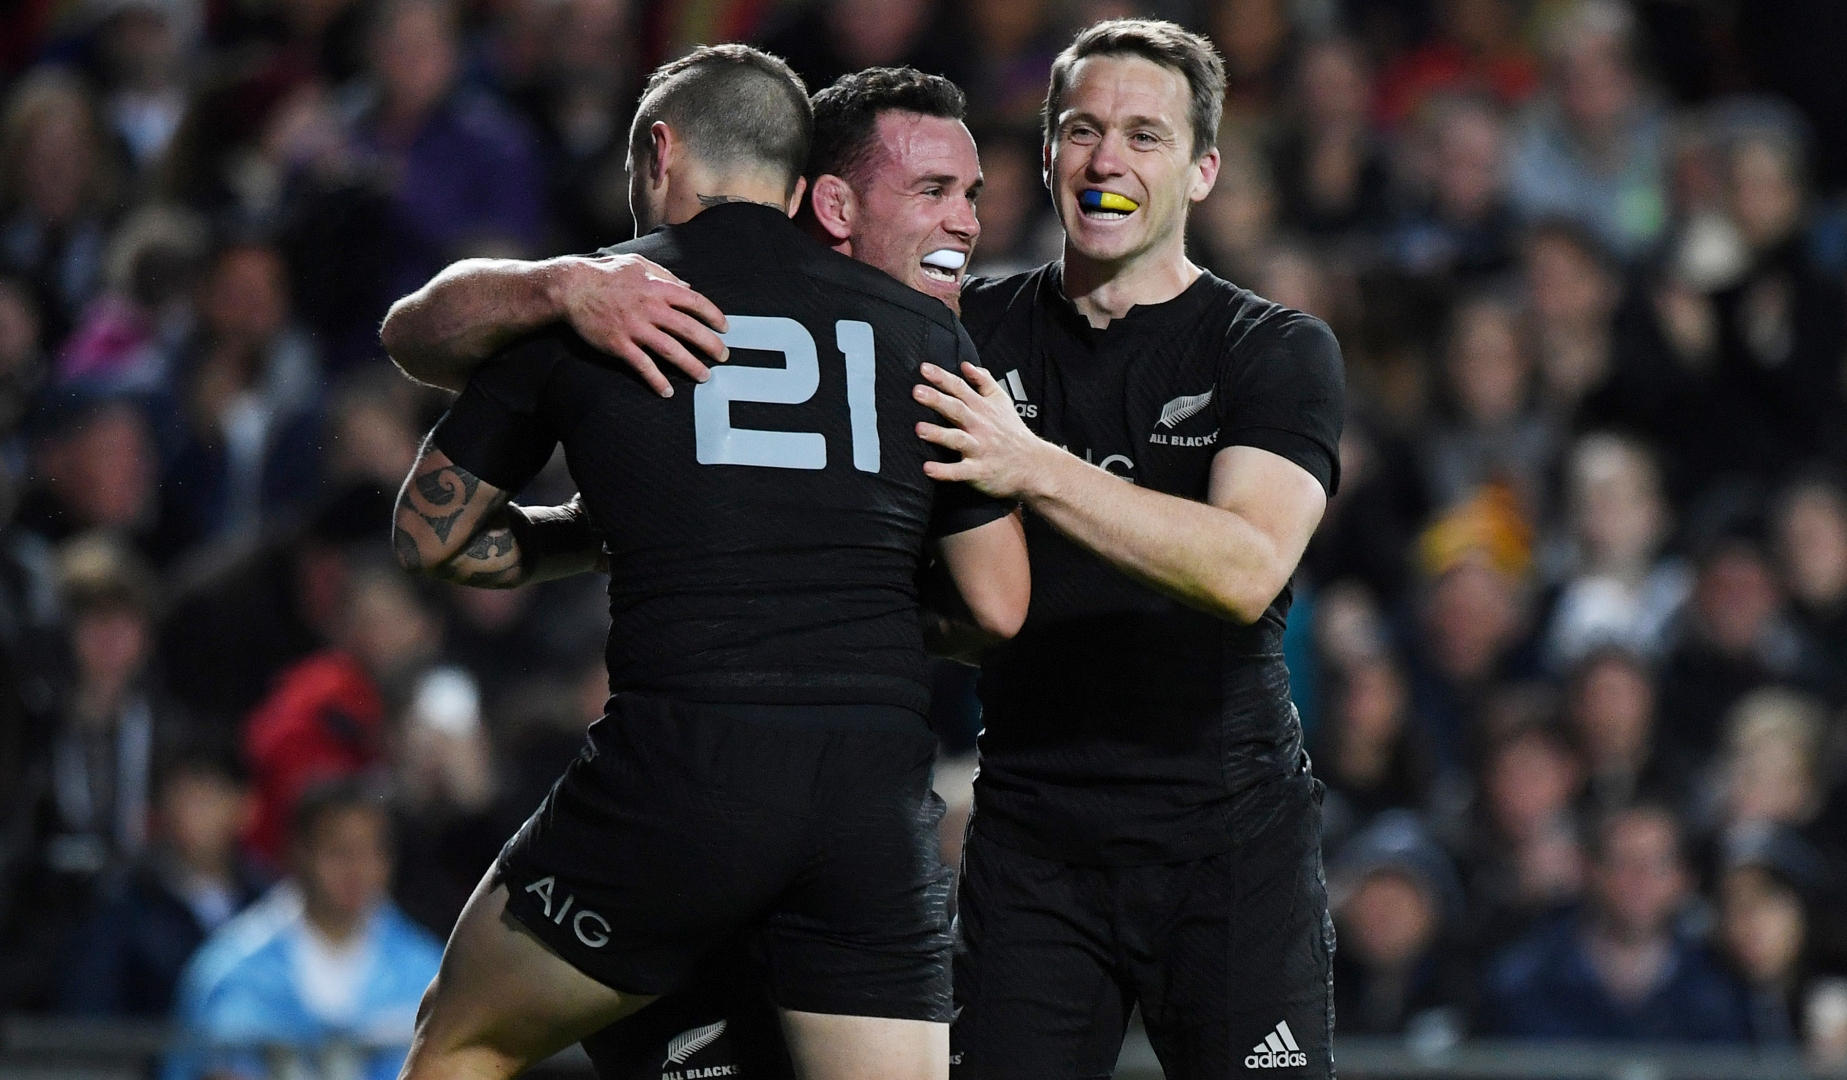 All Blacks finish strong as Perenara shines